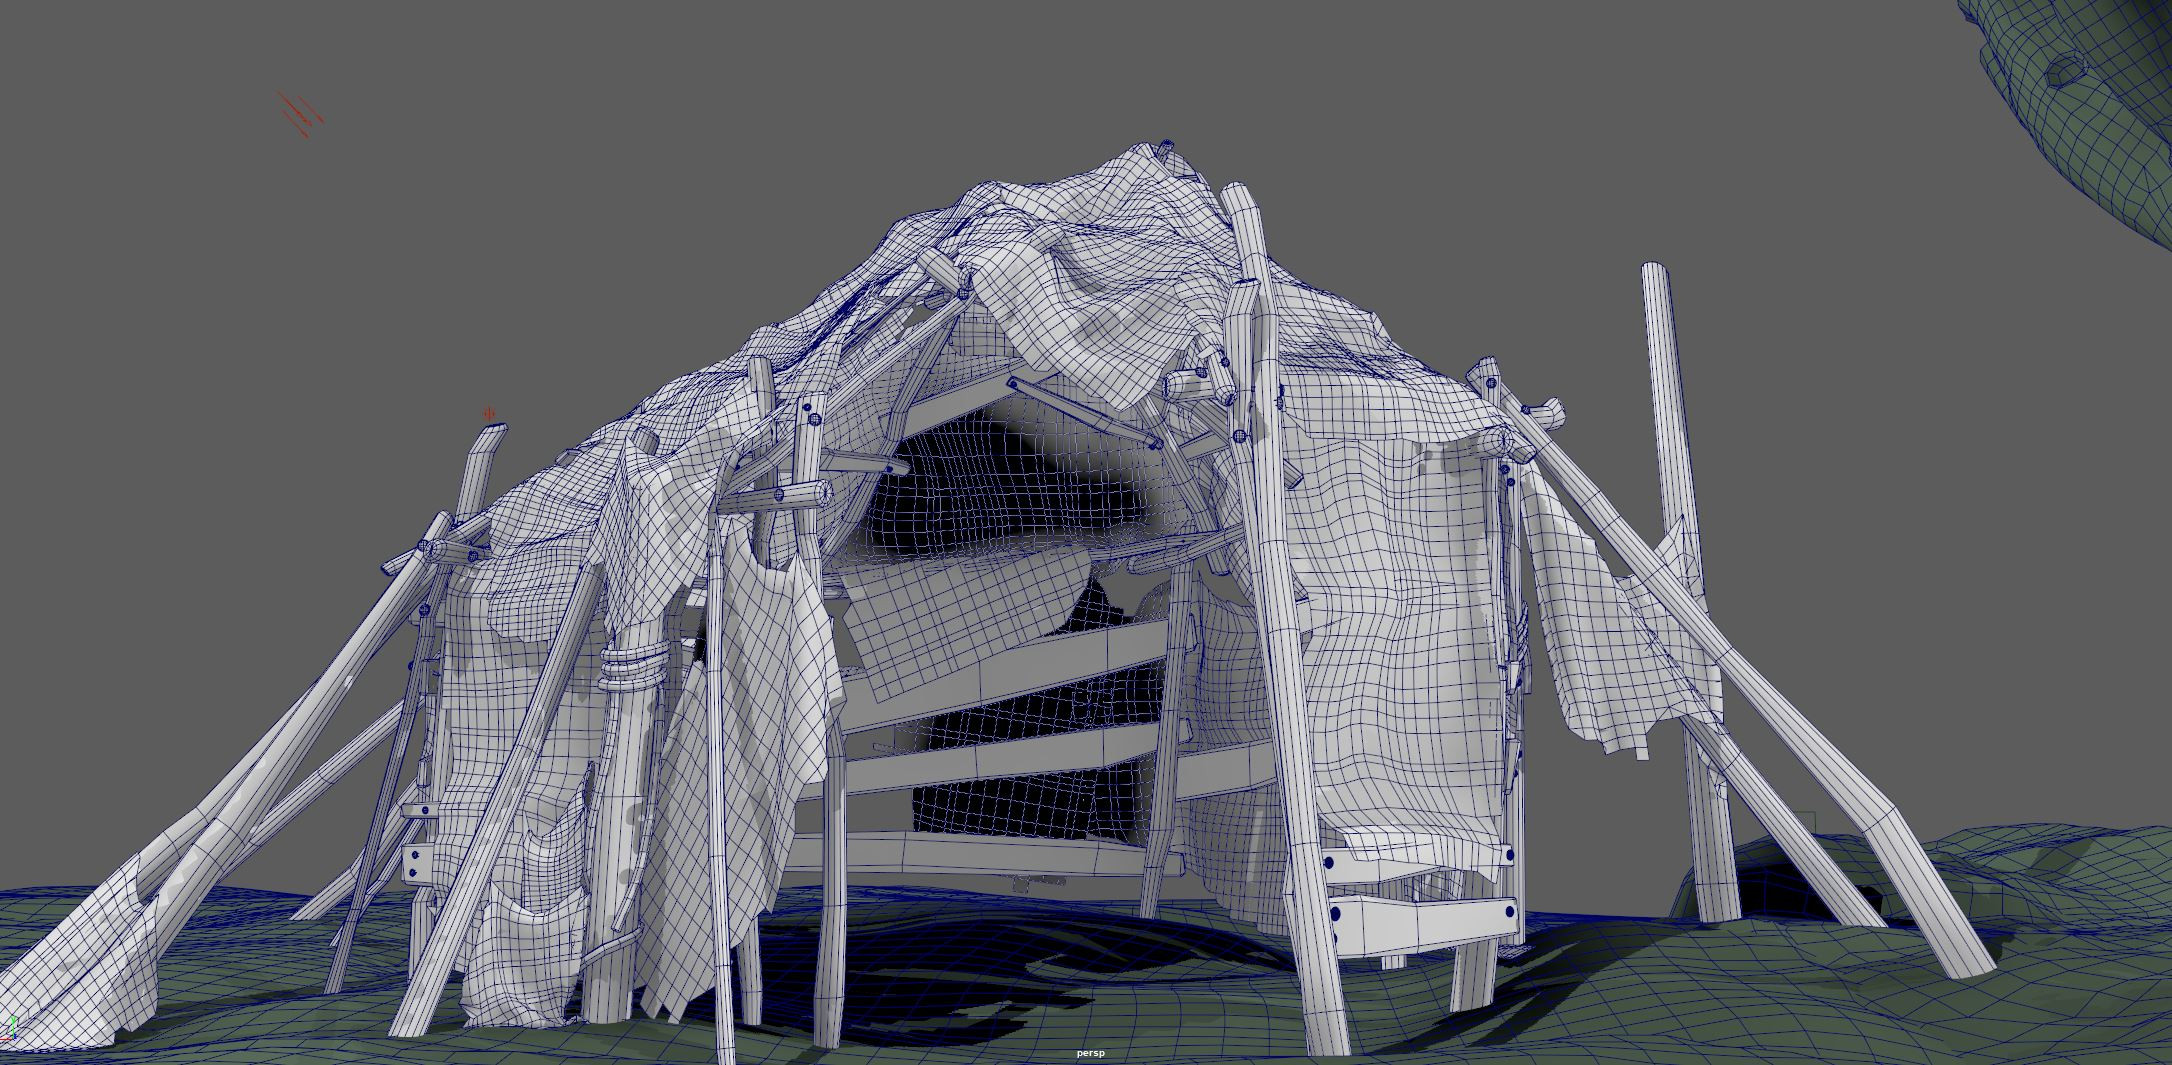 The Hut - Wire frame| It is a hero asset so it is dense in poly count. The overall scene was small, so I didn't care about trying to reduce the polys where it is not needed. But, if optimizing the performance was an issue, I would do a poly reduction pass